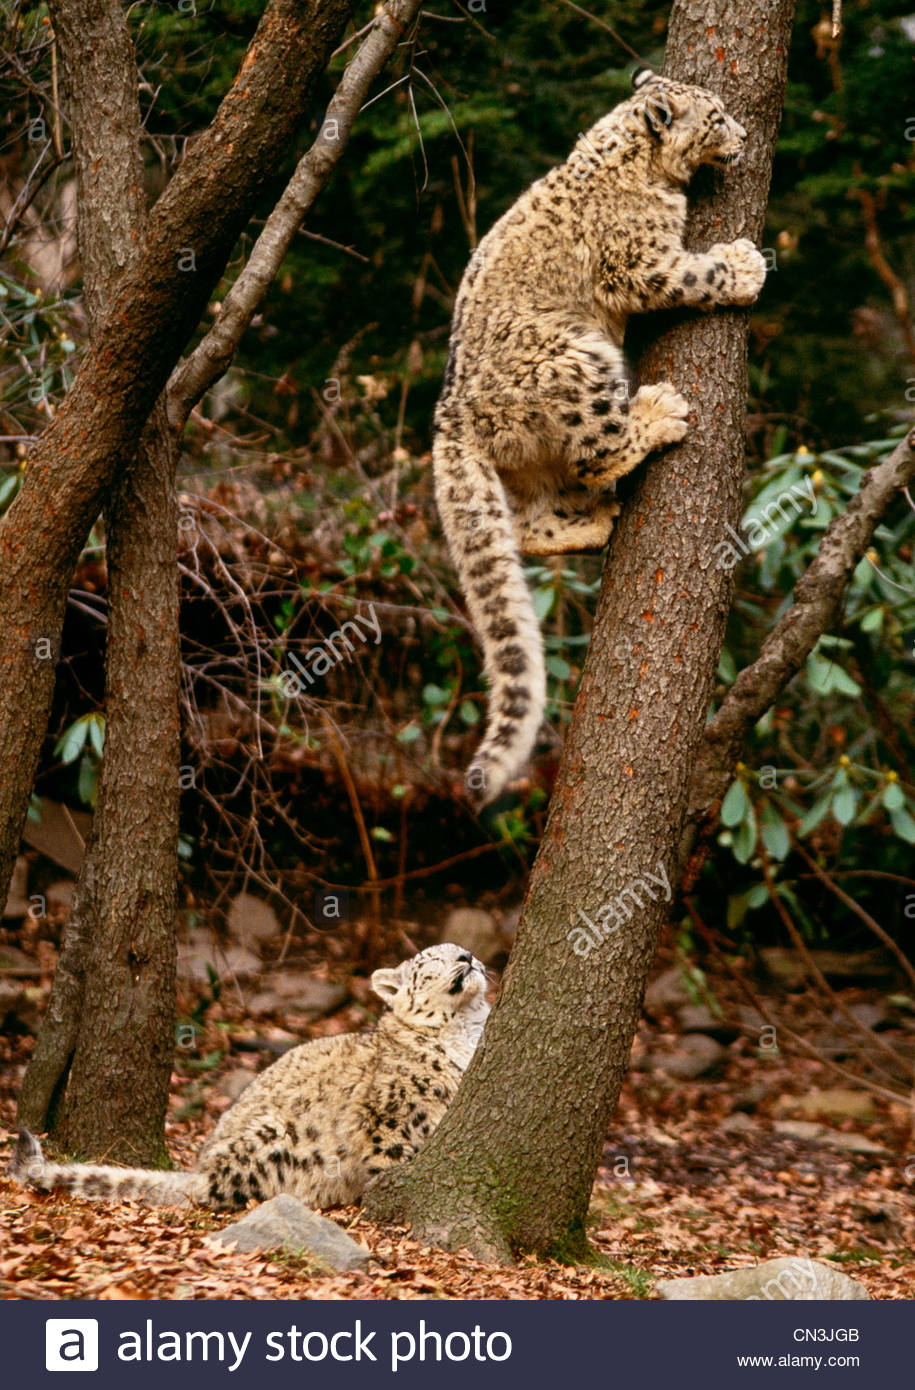 Six month old snow leopard cubs - Stock Image